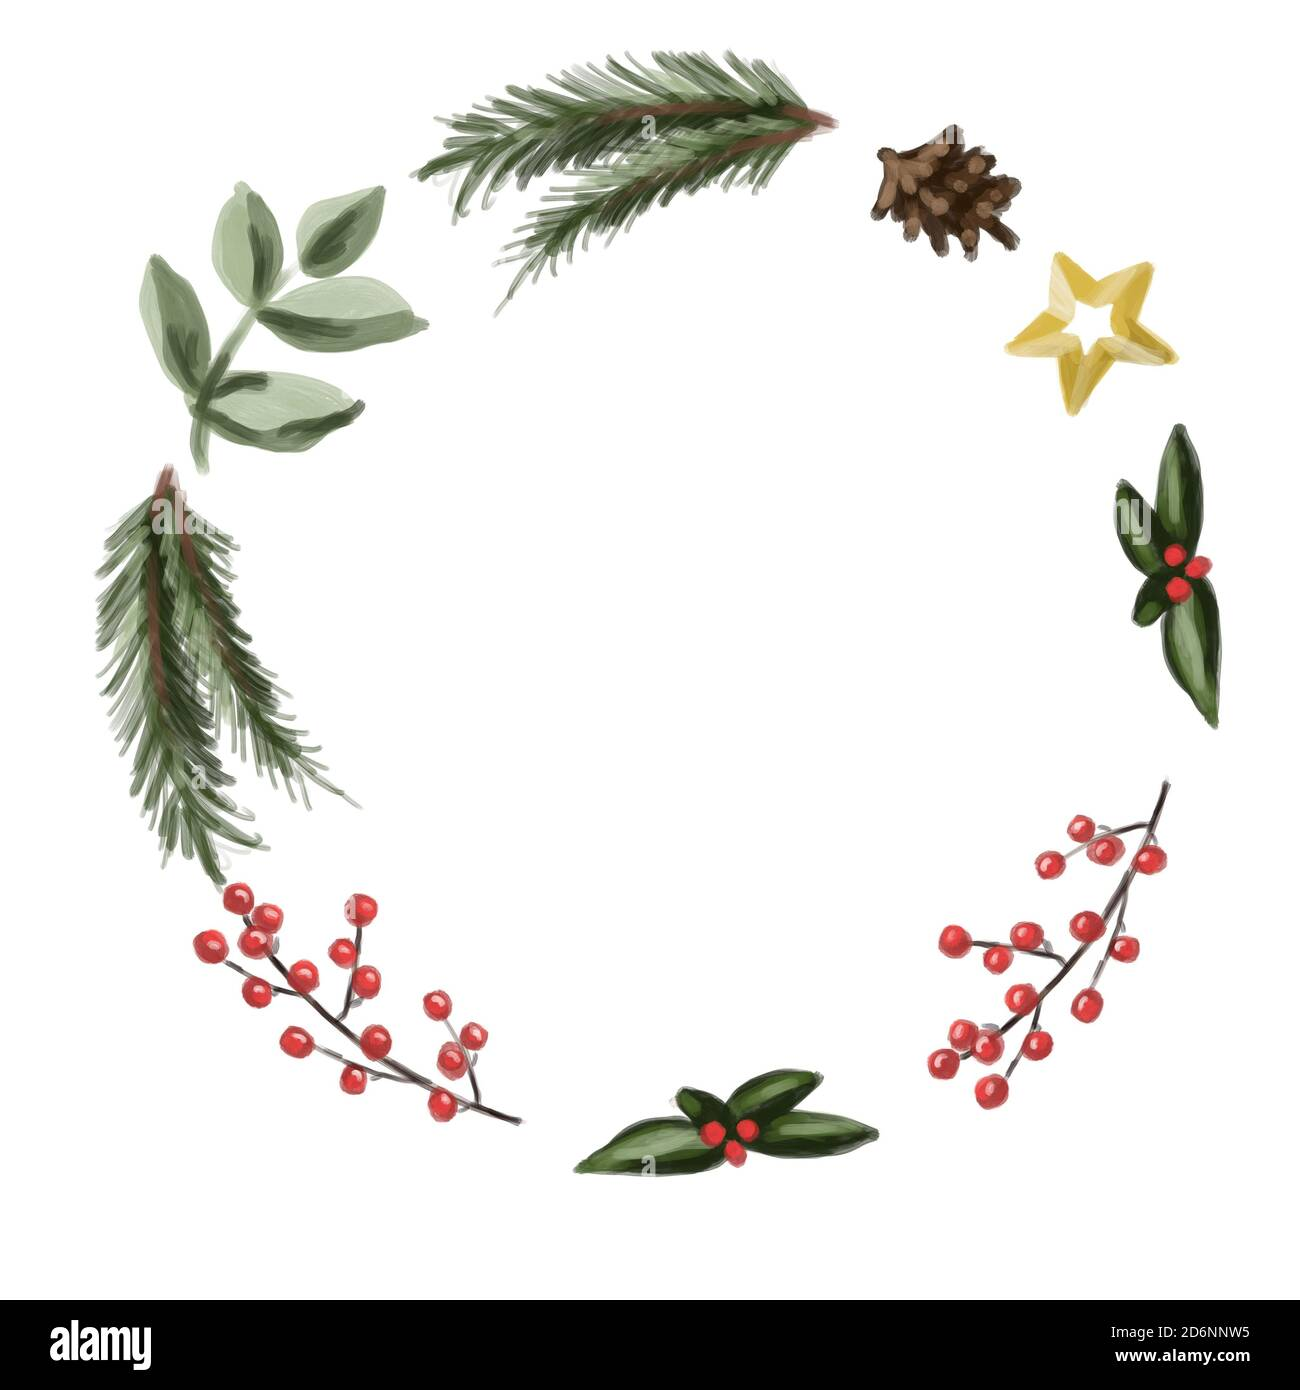 Isolated Wreath Drawing On A White Background Red Berries Christmas Tree Branch Golden Star Blank Postcard Christmas Wreath Stock Photo Alamy